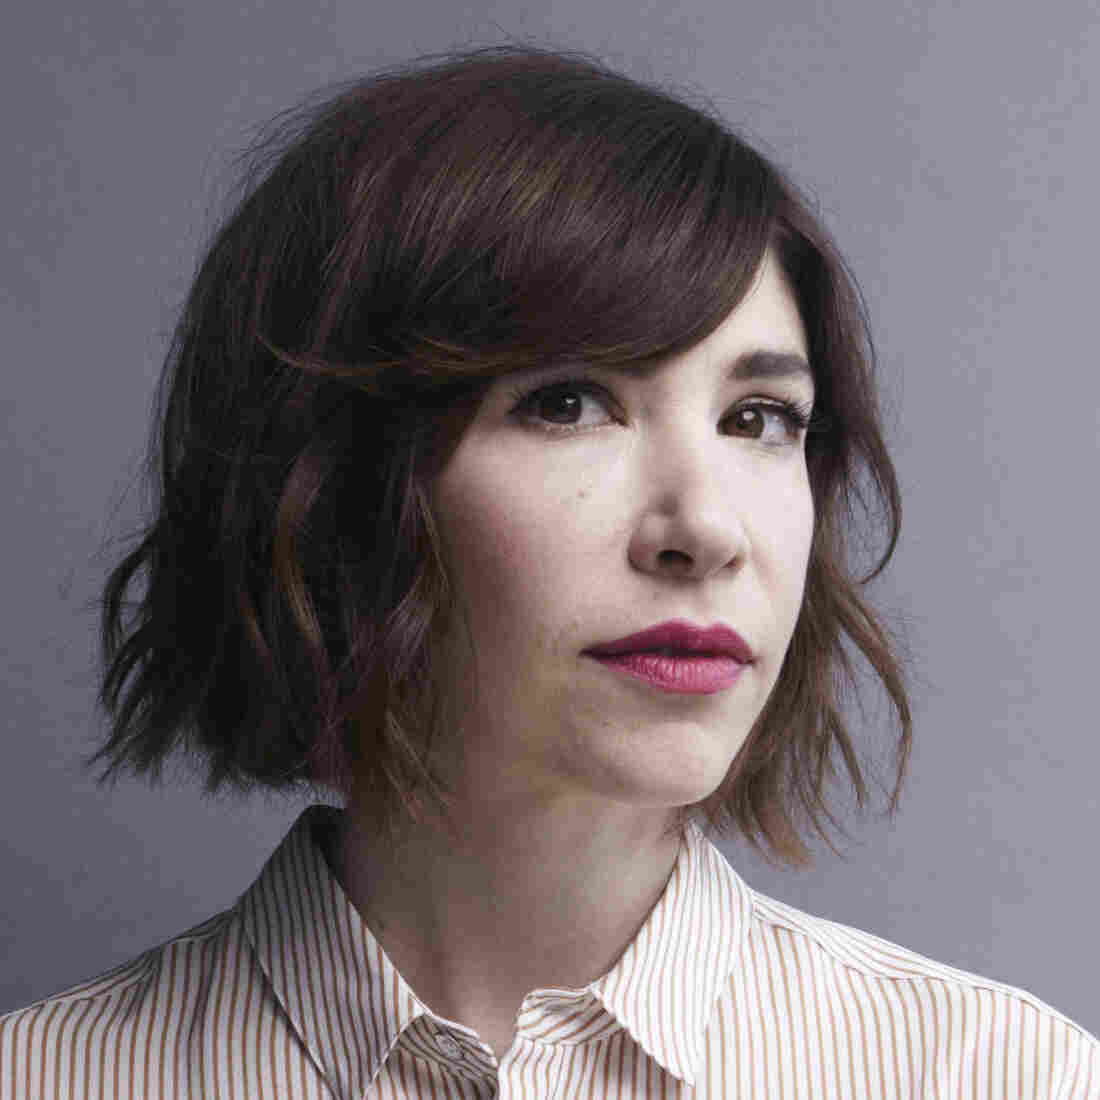 'Modern Girl' Carrie Brownstein Describes Finding (And Hiding) Herself In Music